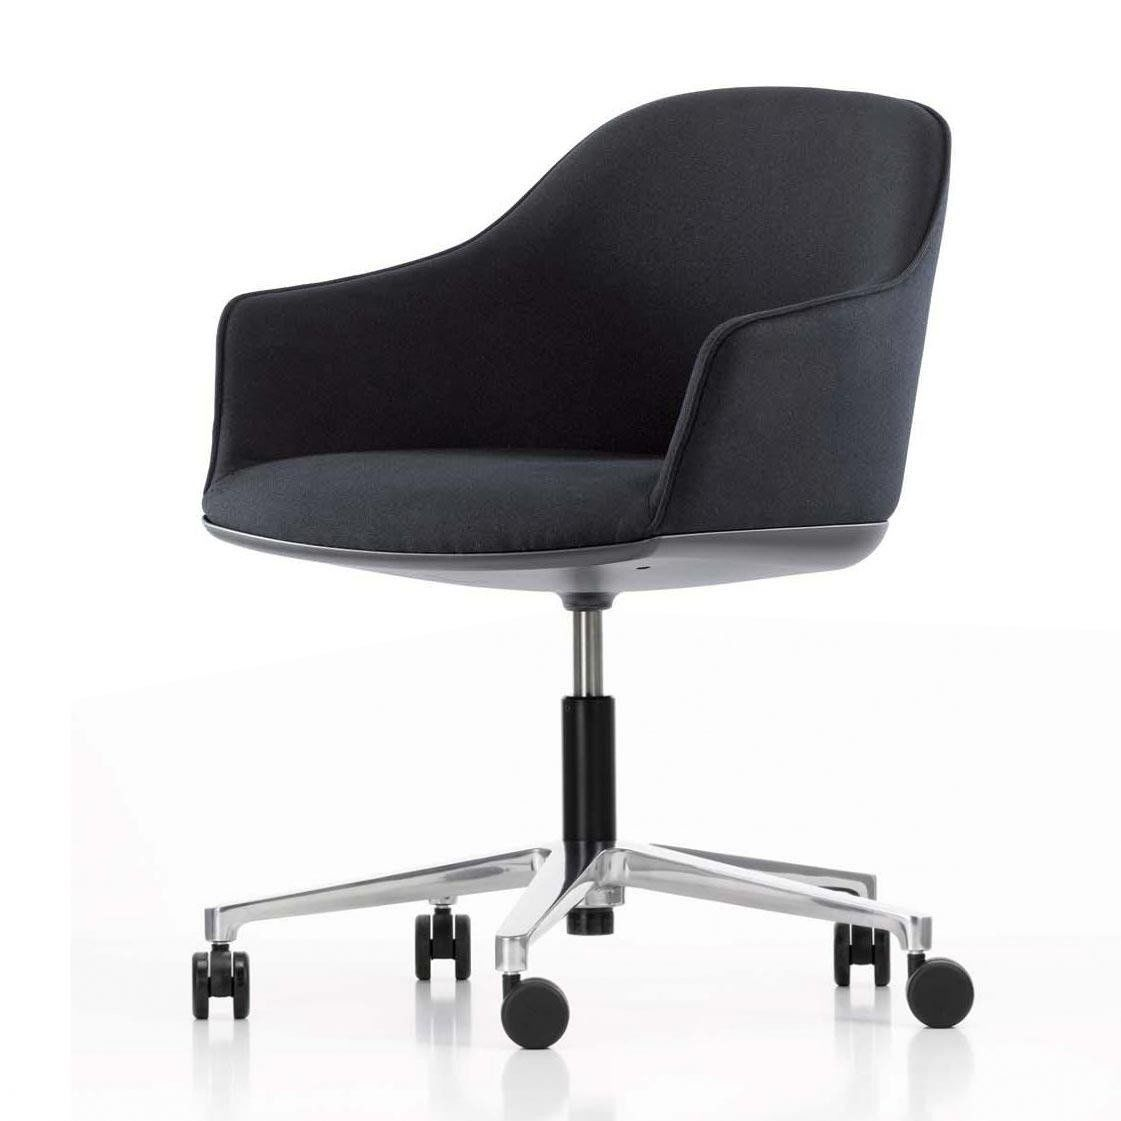 vitra office chair price small softshell